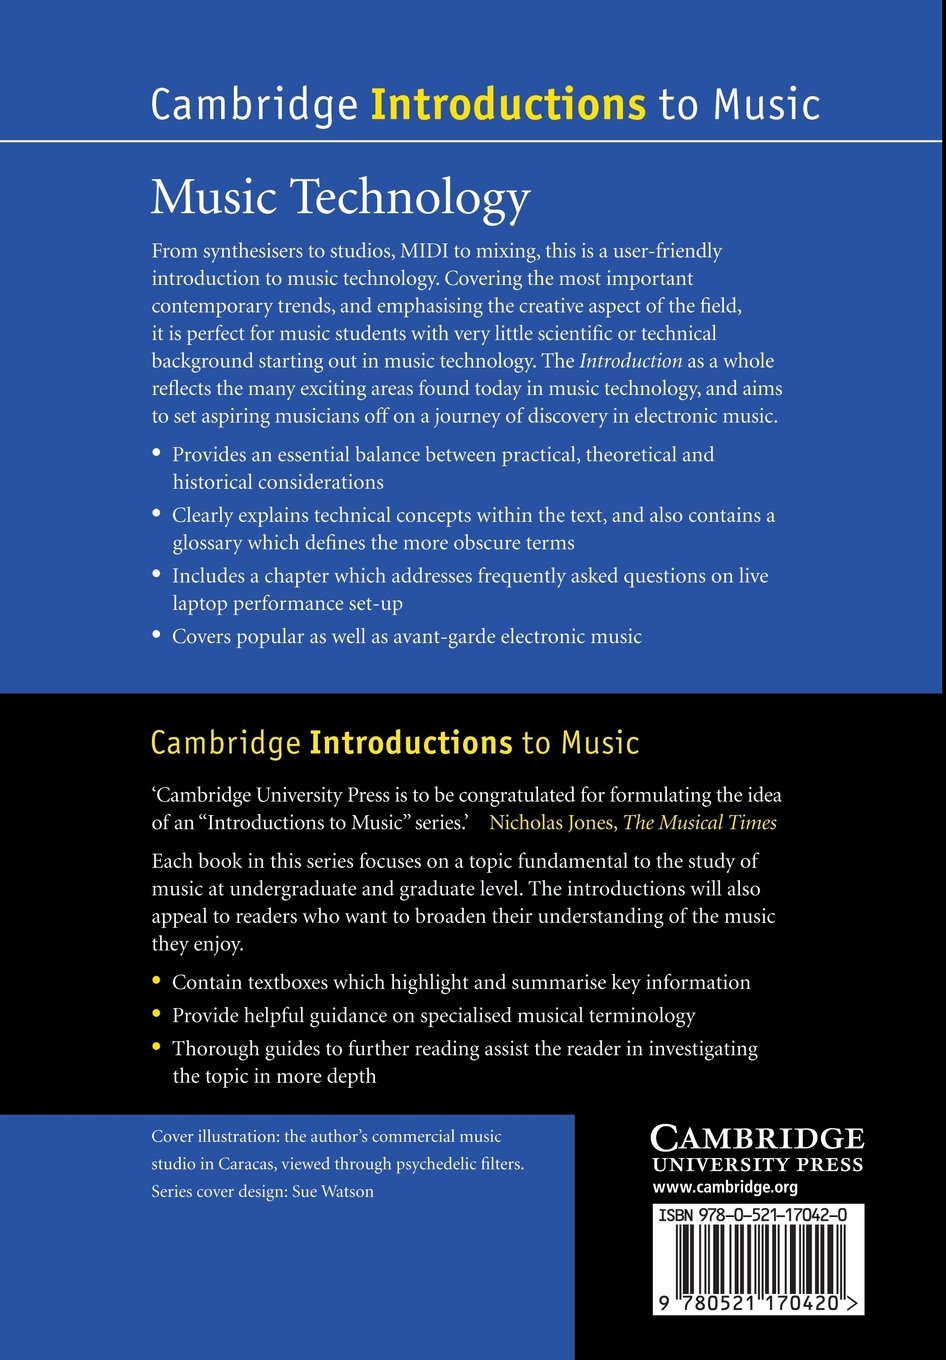 Music technology cambridge introductions to music julio d music technology cambridge introductions to music julio descrivn 9780521170420 amazon books fandeluxe Gallery